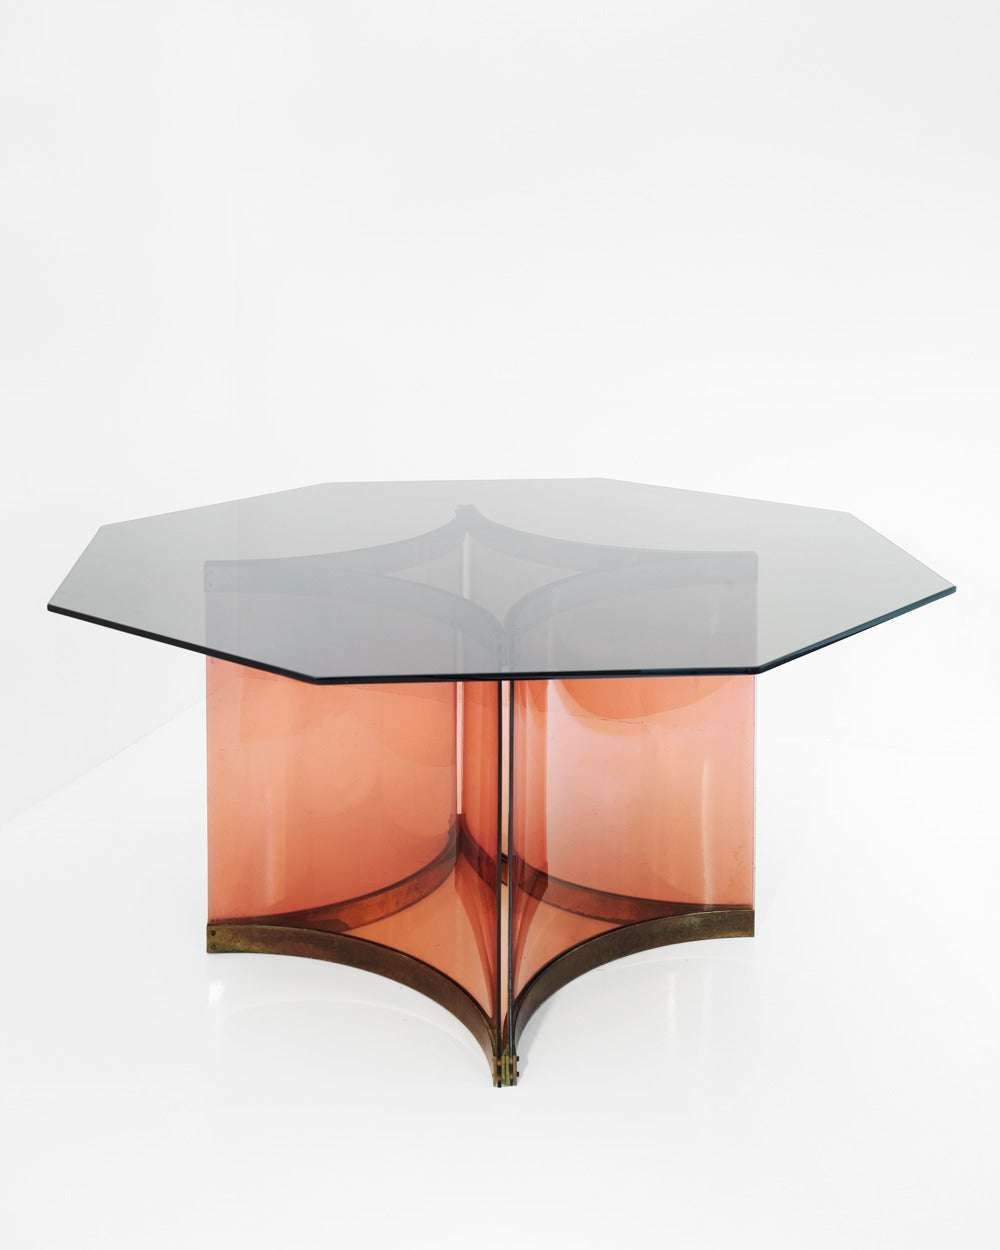 Smoked-glass top octagonal dining table with the designer's signature Perspex base.